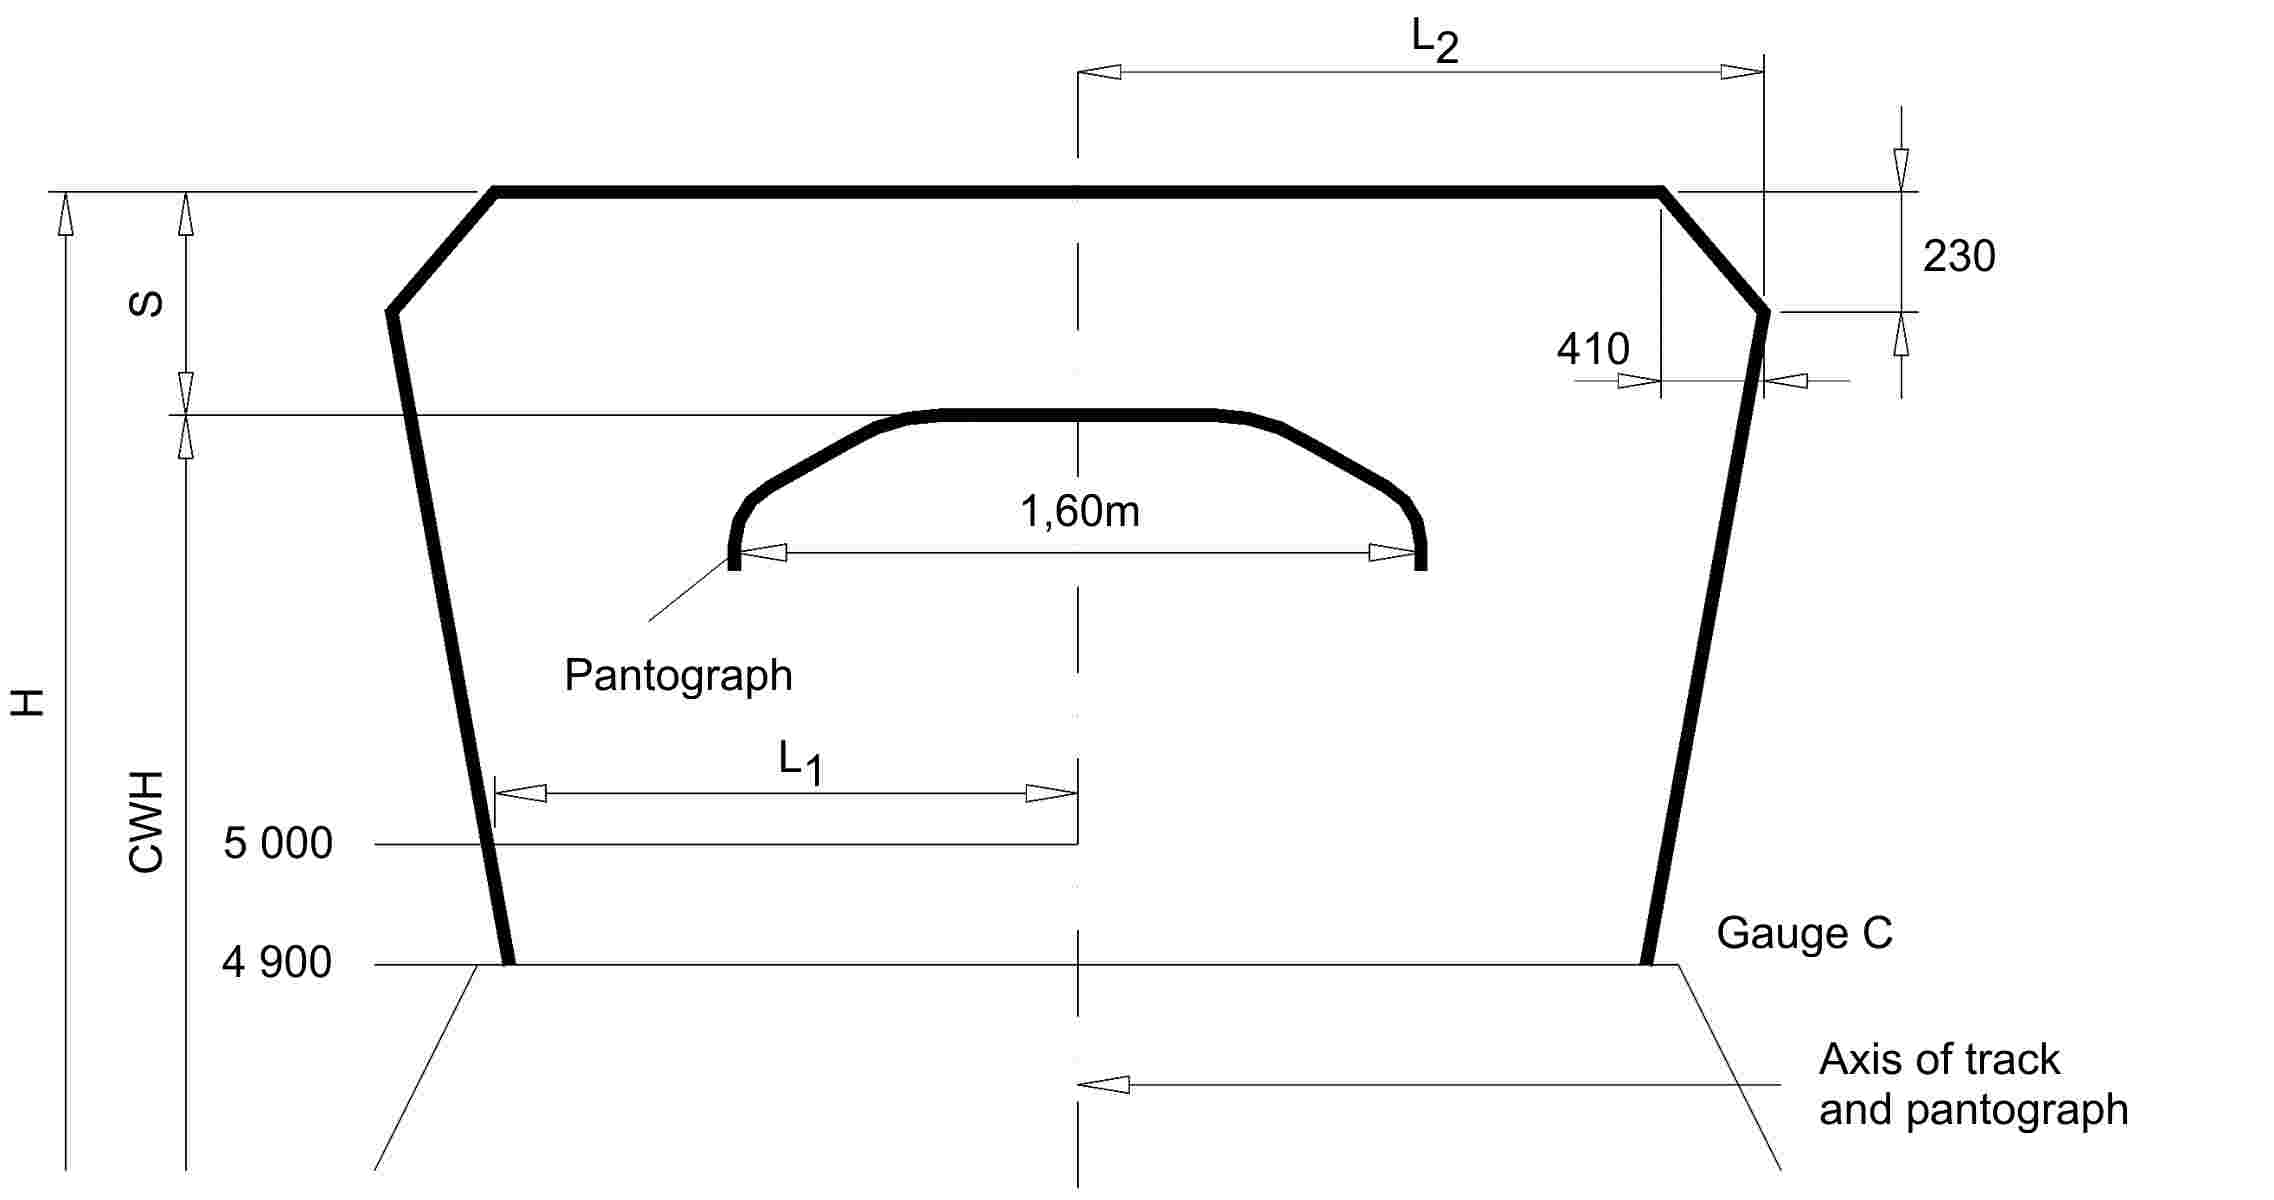 Eur Lex 02002d0733 20081001 En Here Are The Diagrams For Intermediate Switches Marked With L1 L2 Table H3 Shows As An Example Relations Between Track Radius Cant And Dimensions High Speed Lines A Of More Than 3 000